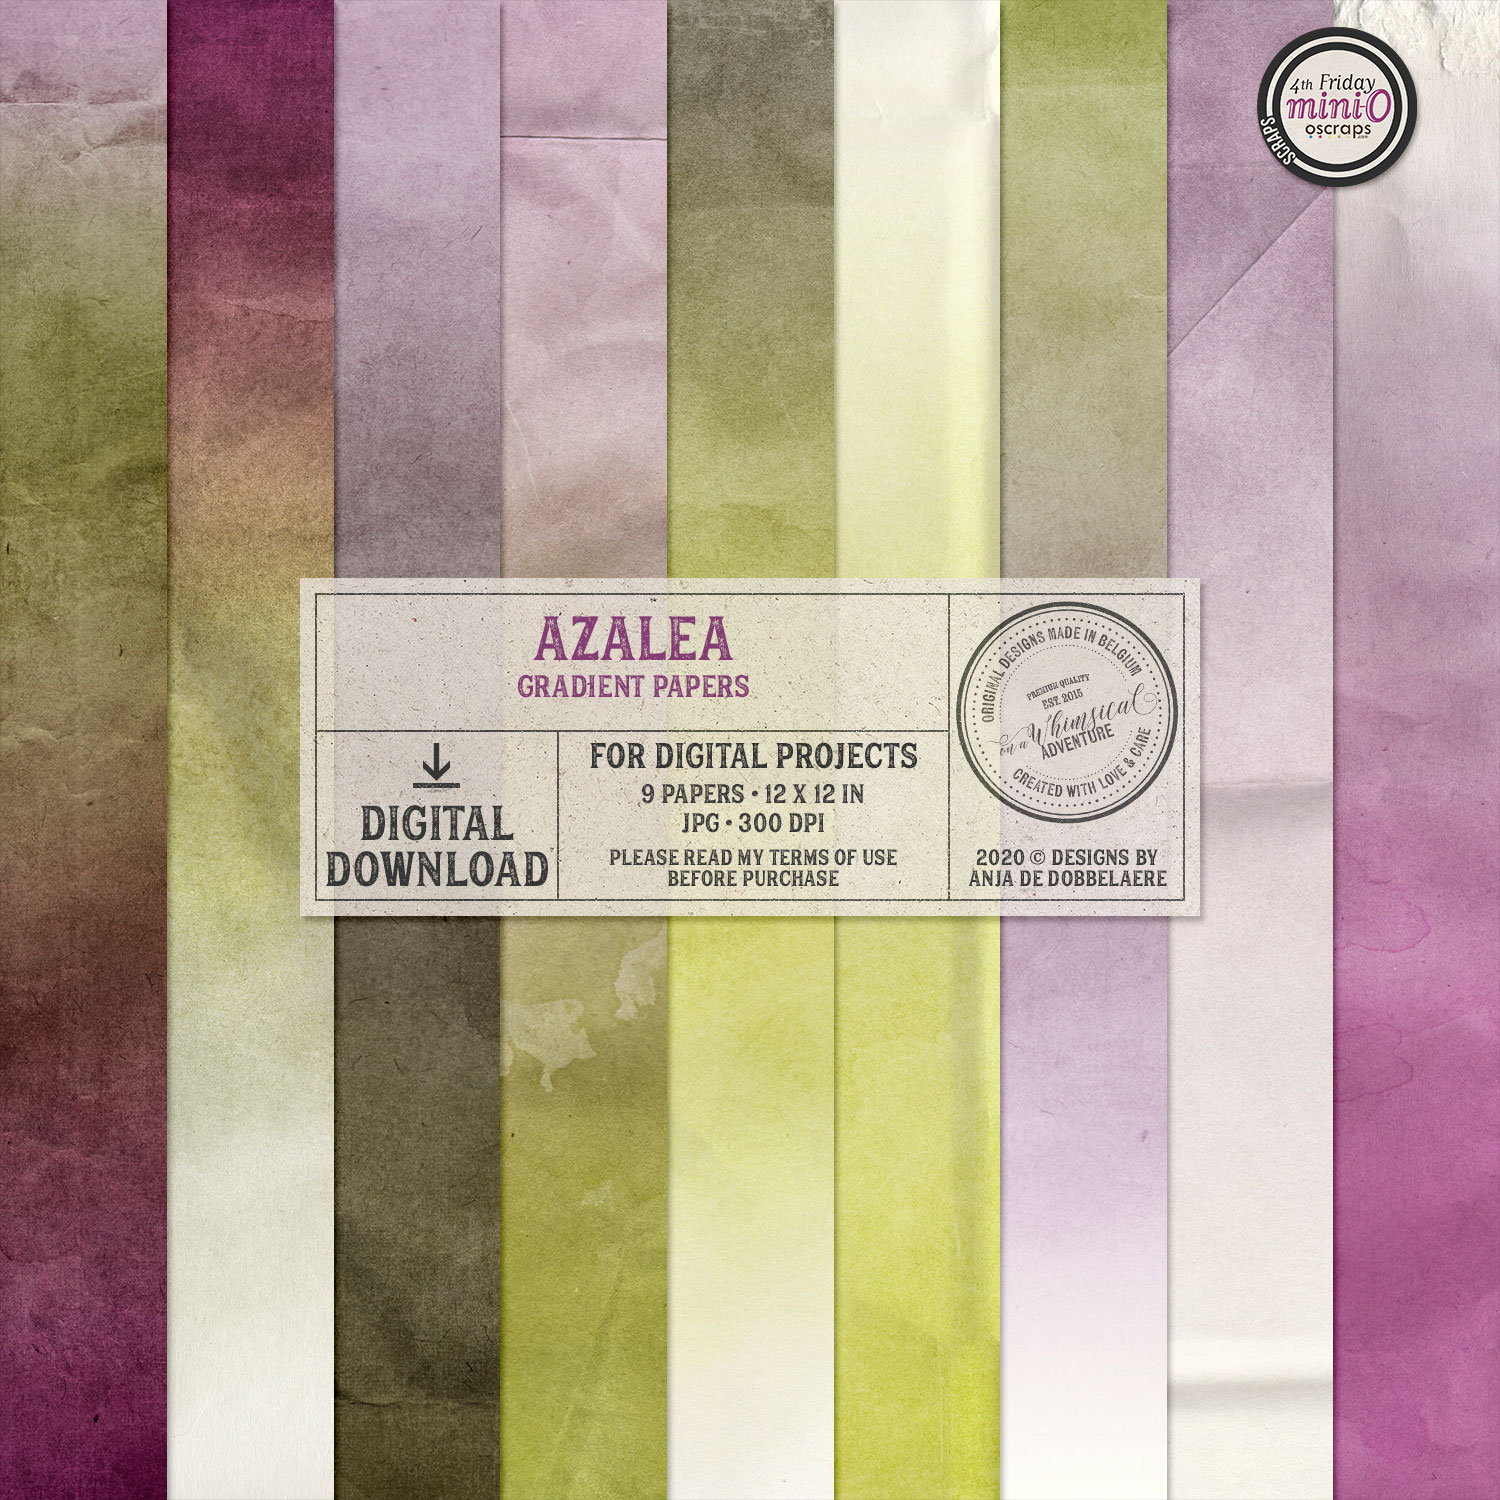 Azalea Gradient Papers by On A Whimsical Adventure